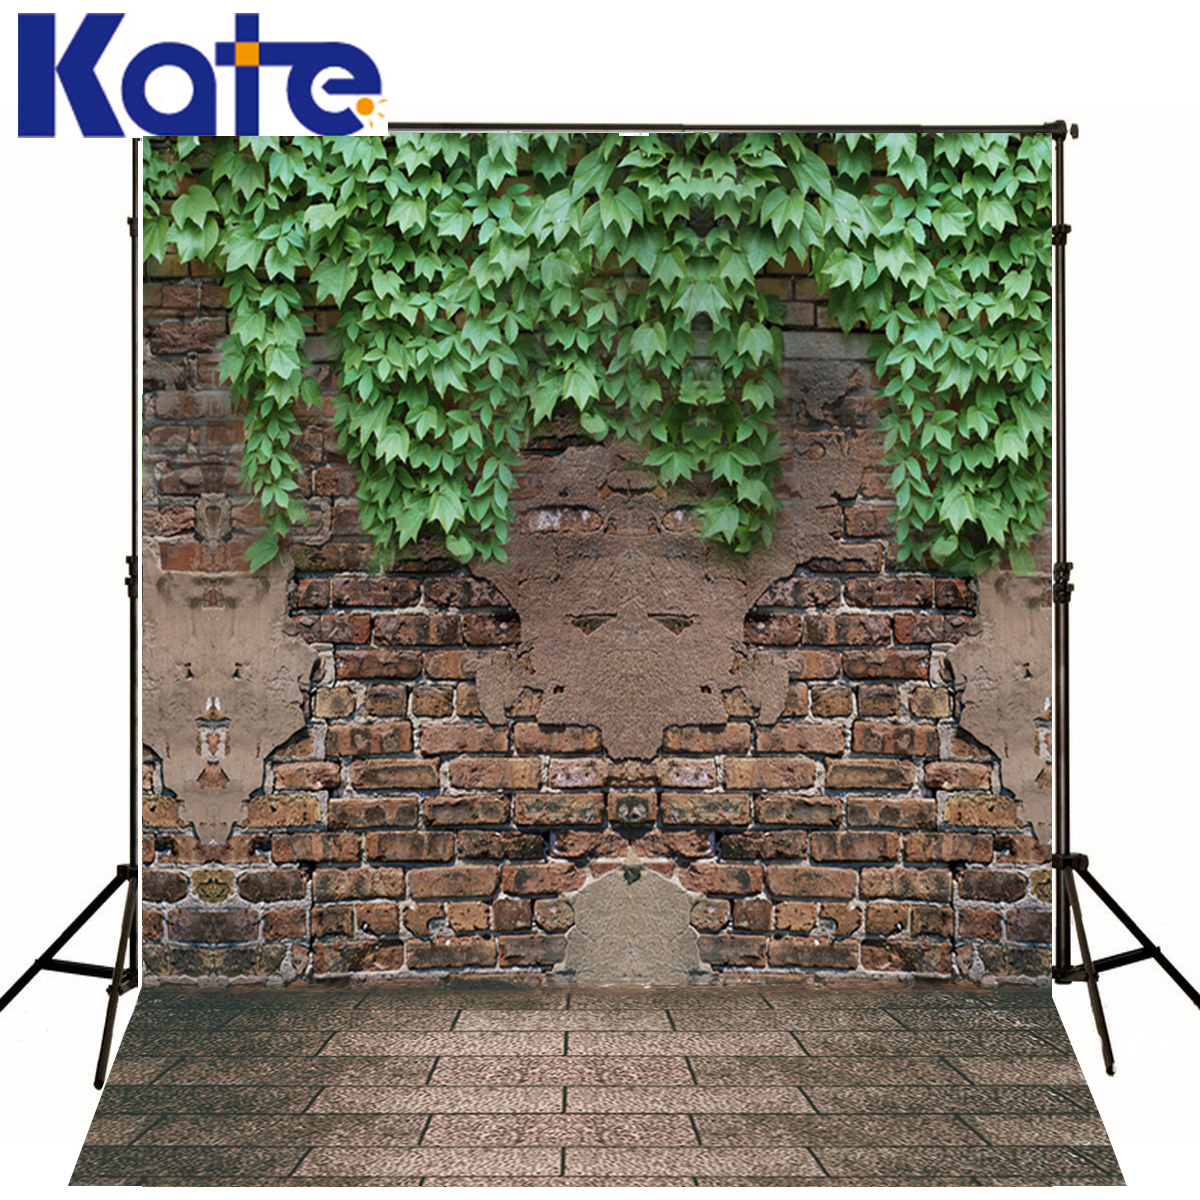 Kate Background Photography Newborn Baby Green Scree Leaf Foto Achtergrond Kerst Old Brick Wall Floor Backdrop For Photo Shoot allenjoy christmas village decoration house amusement park foto for a photo shoot photographing background photography